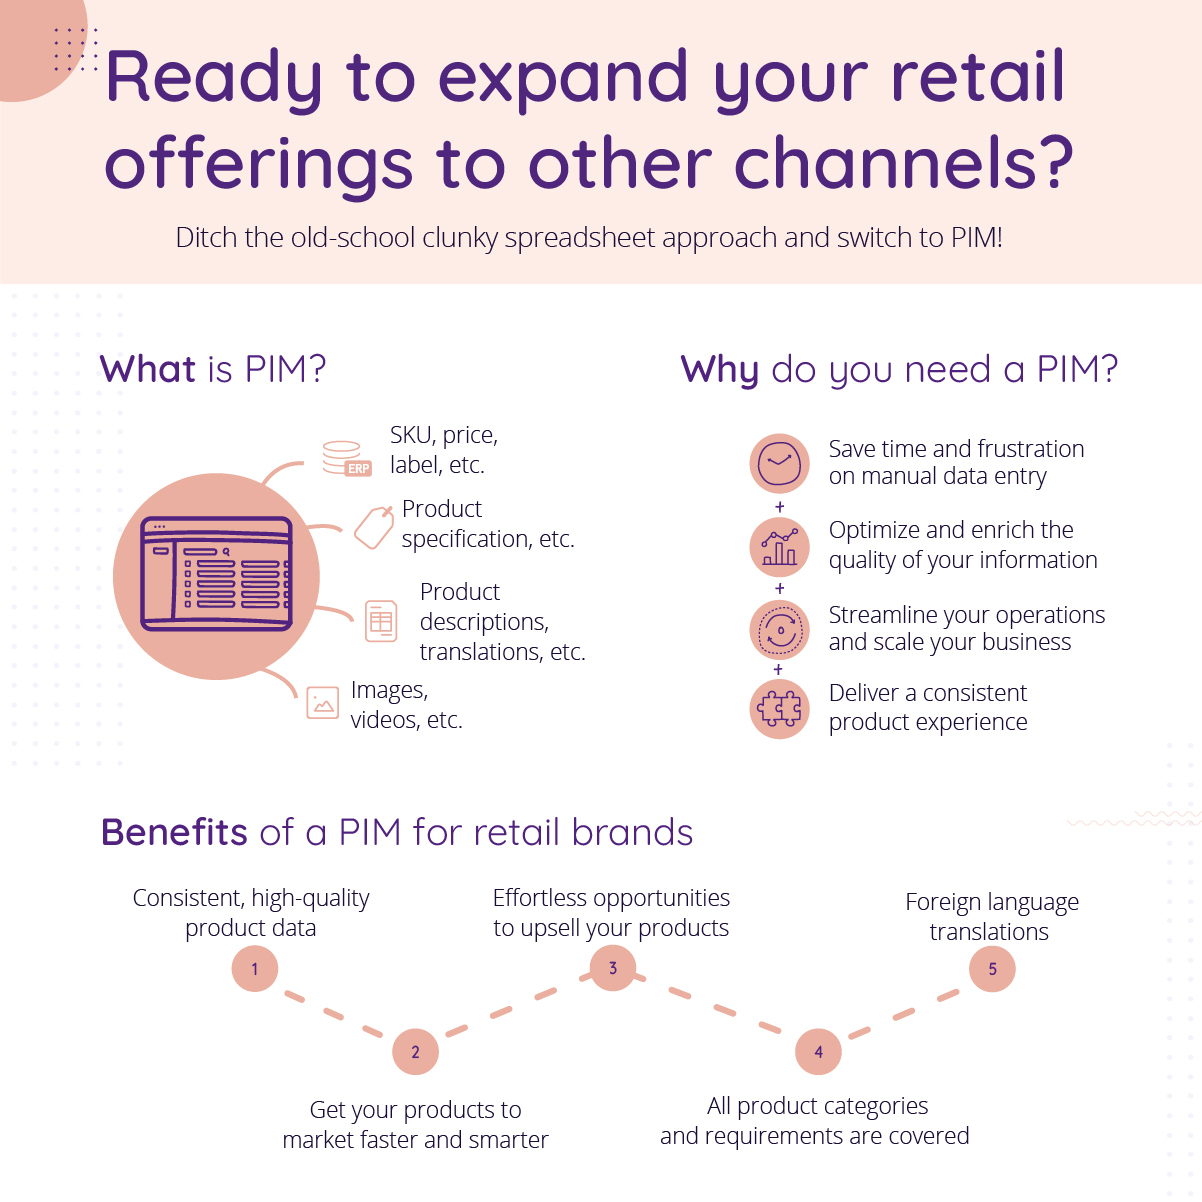 Infrographic explaining what is PIM, why you need PIM and the benefits of PIM for retailers